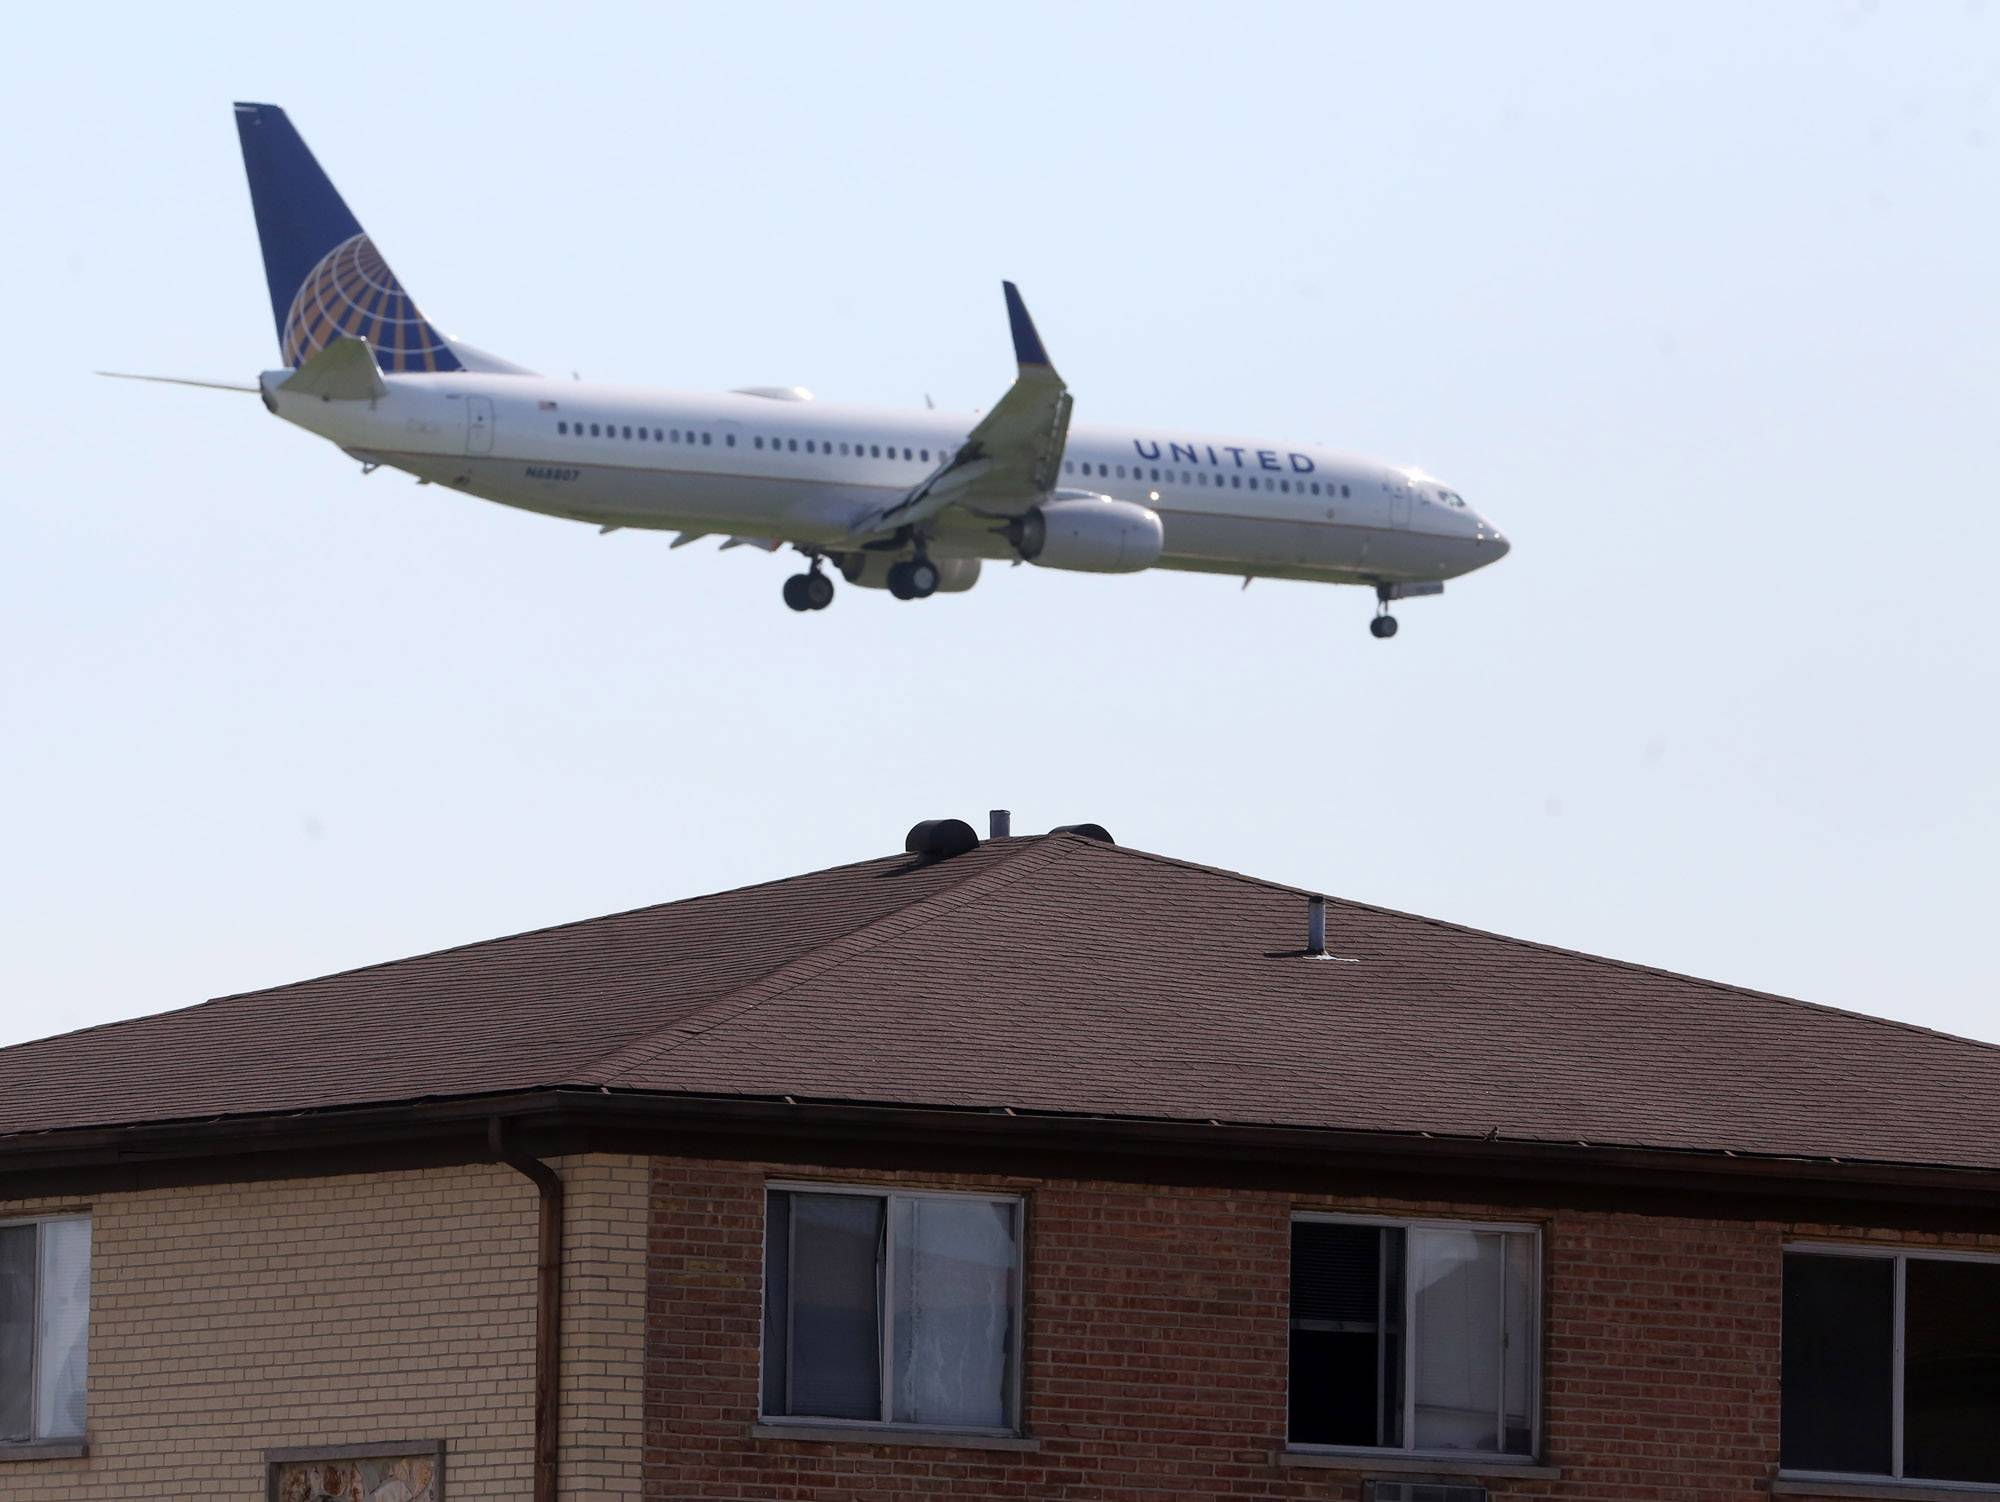 Nightly runway rotation at O'Hare could be back